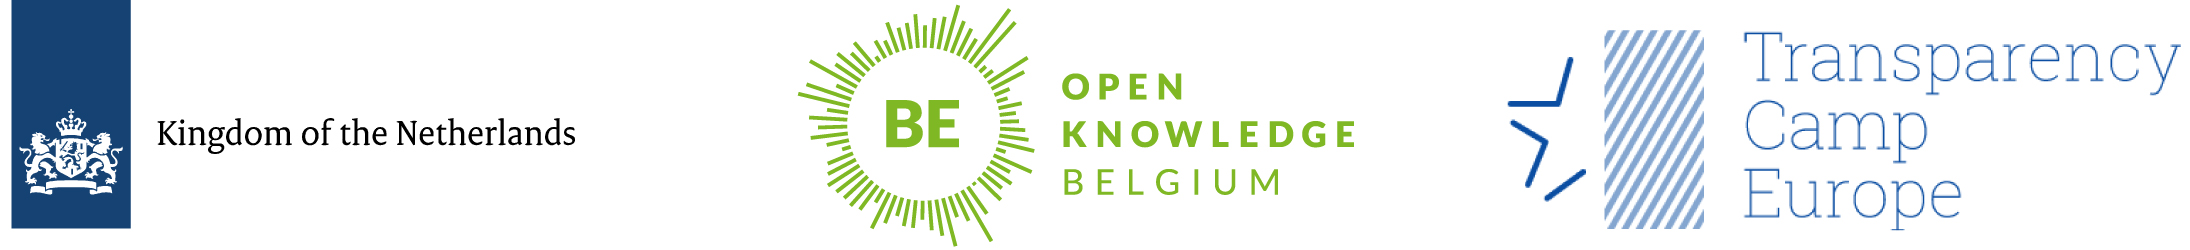 Organised by Ministry of Foreign Affairs of the Netherlands, Open Knowledge Belgium, TransparencyCamp Europe